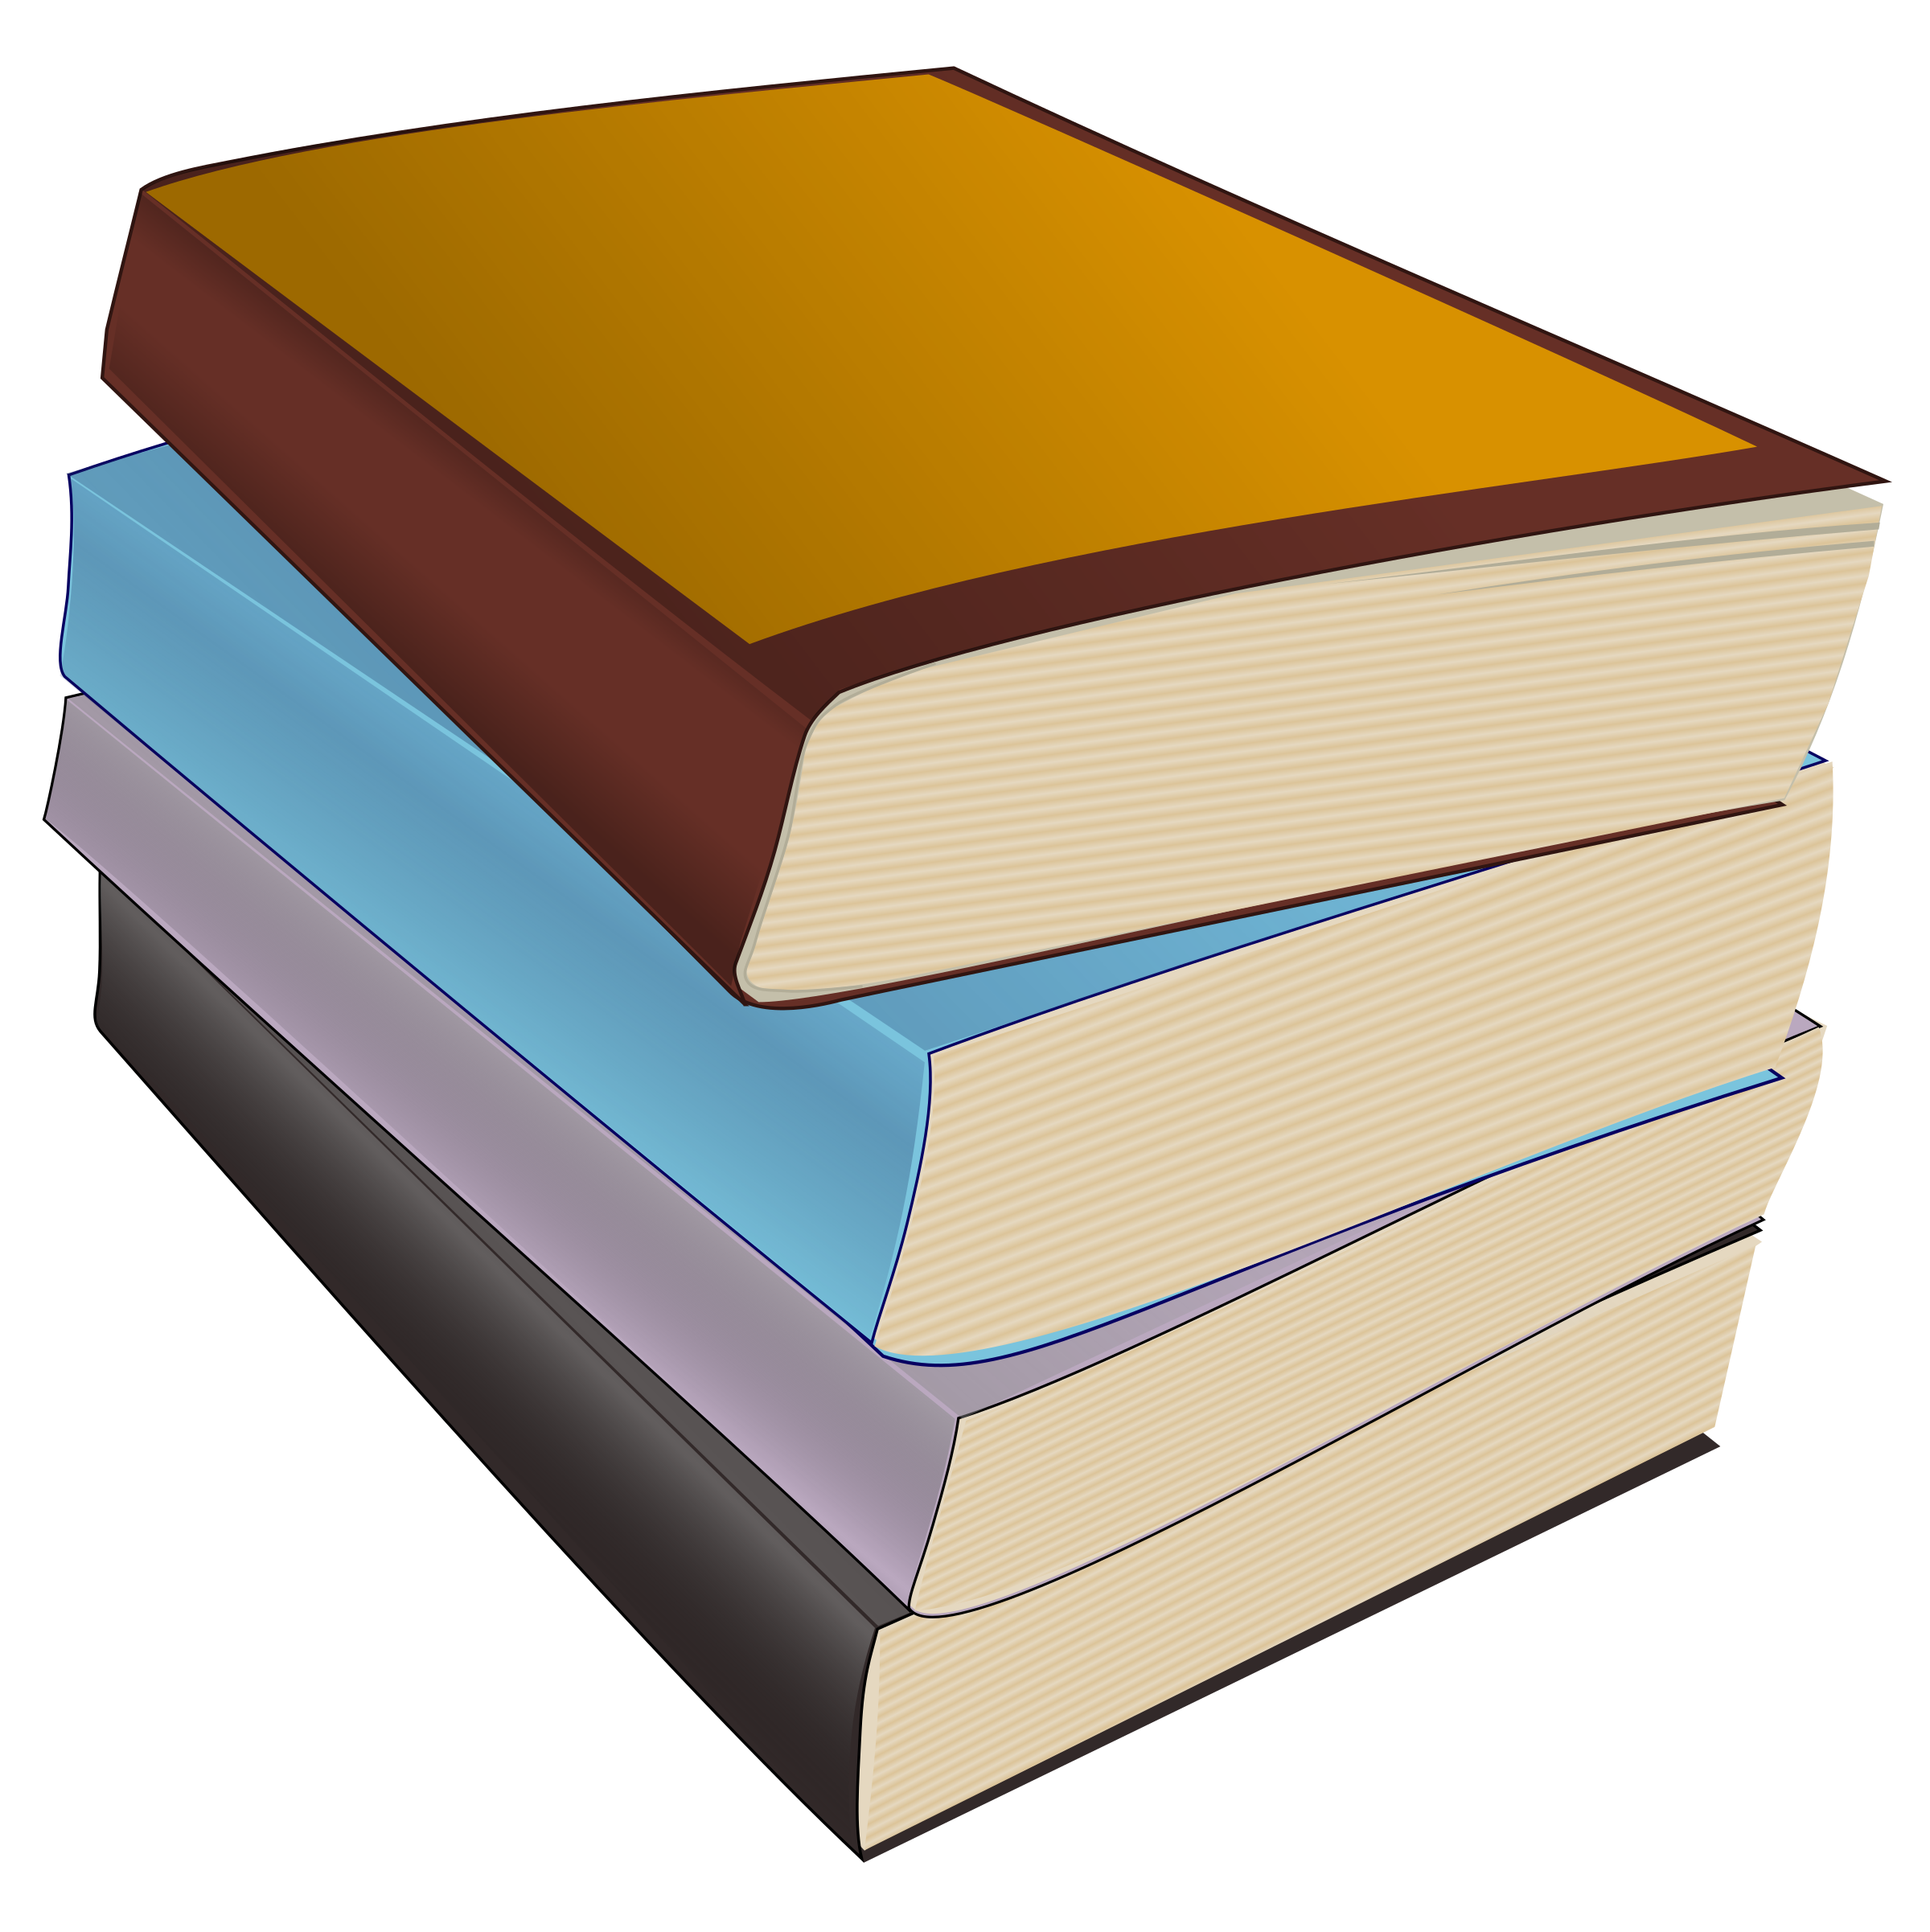 Book clipart stack image free stock Clipart - Stack of Paperbacks image free stock